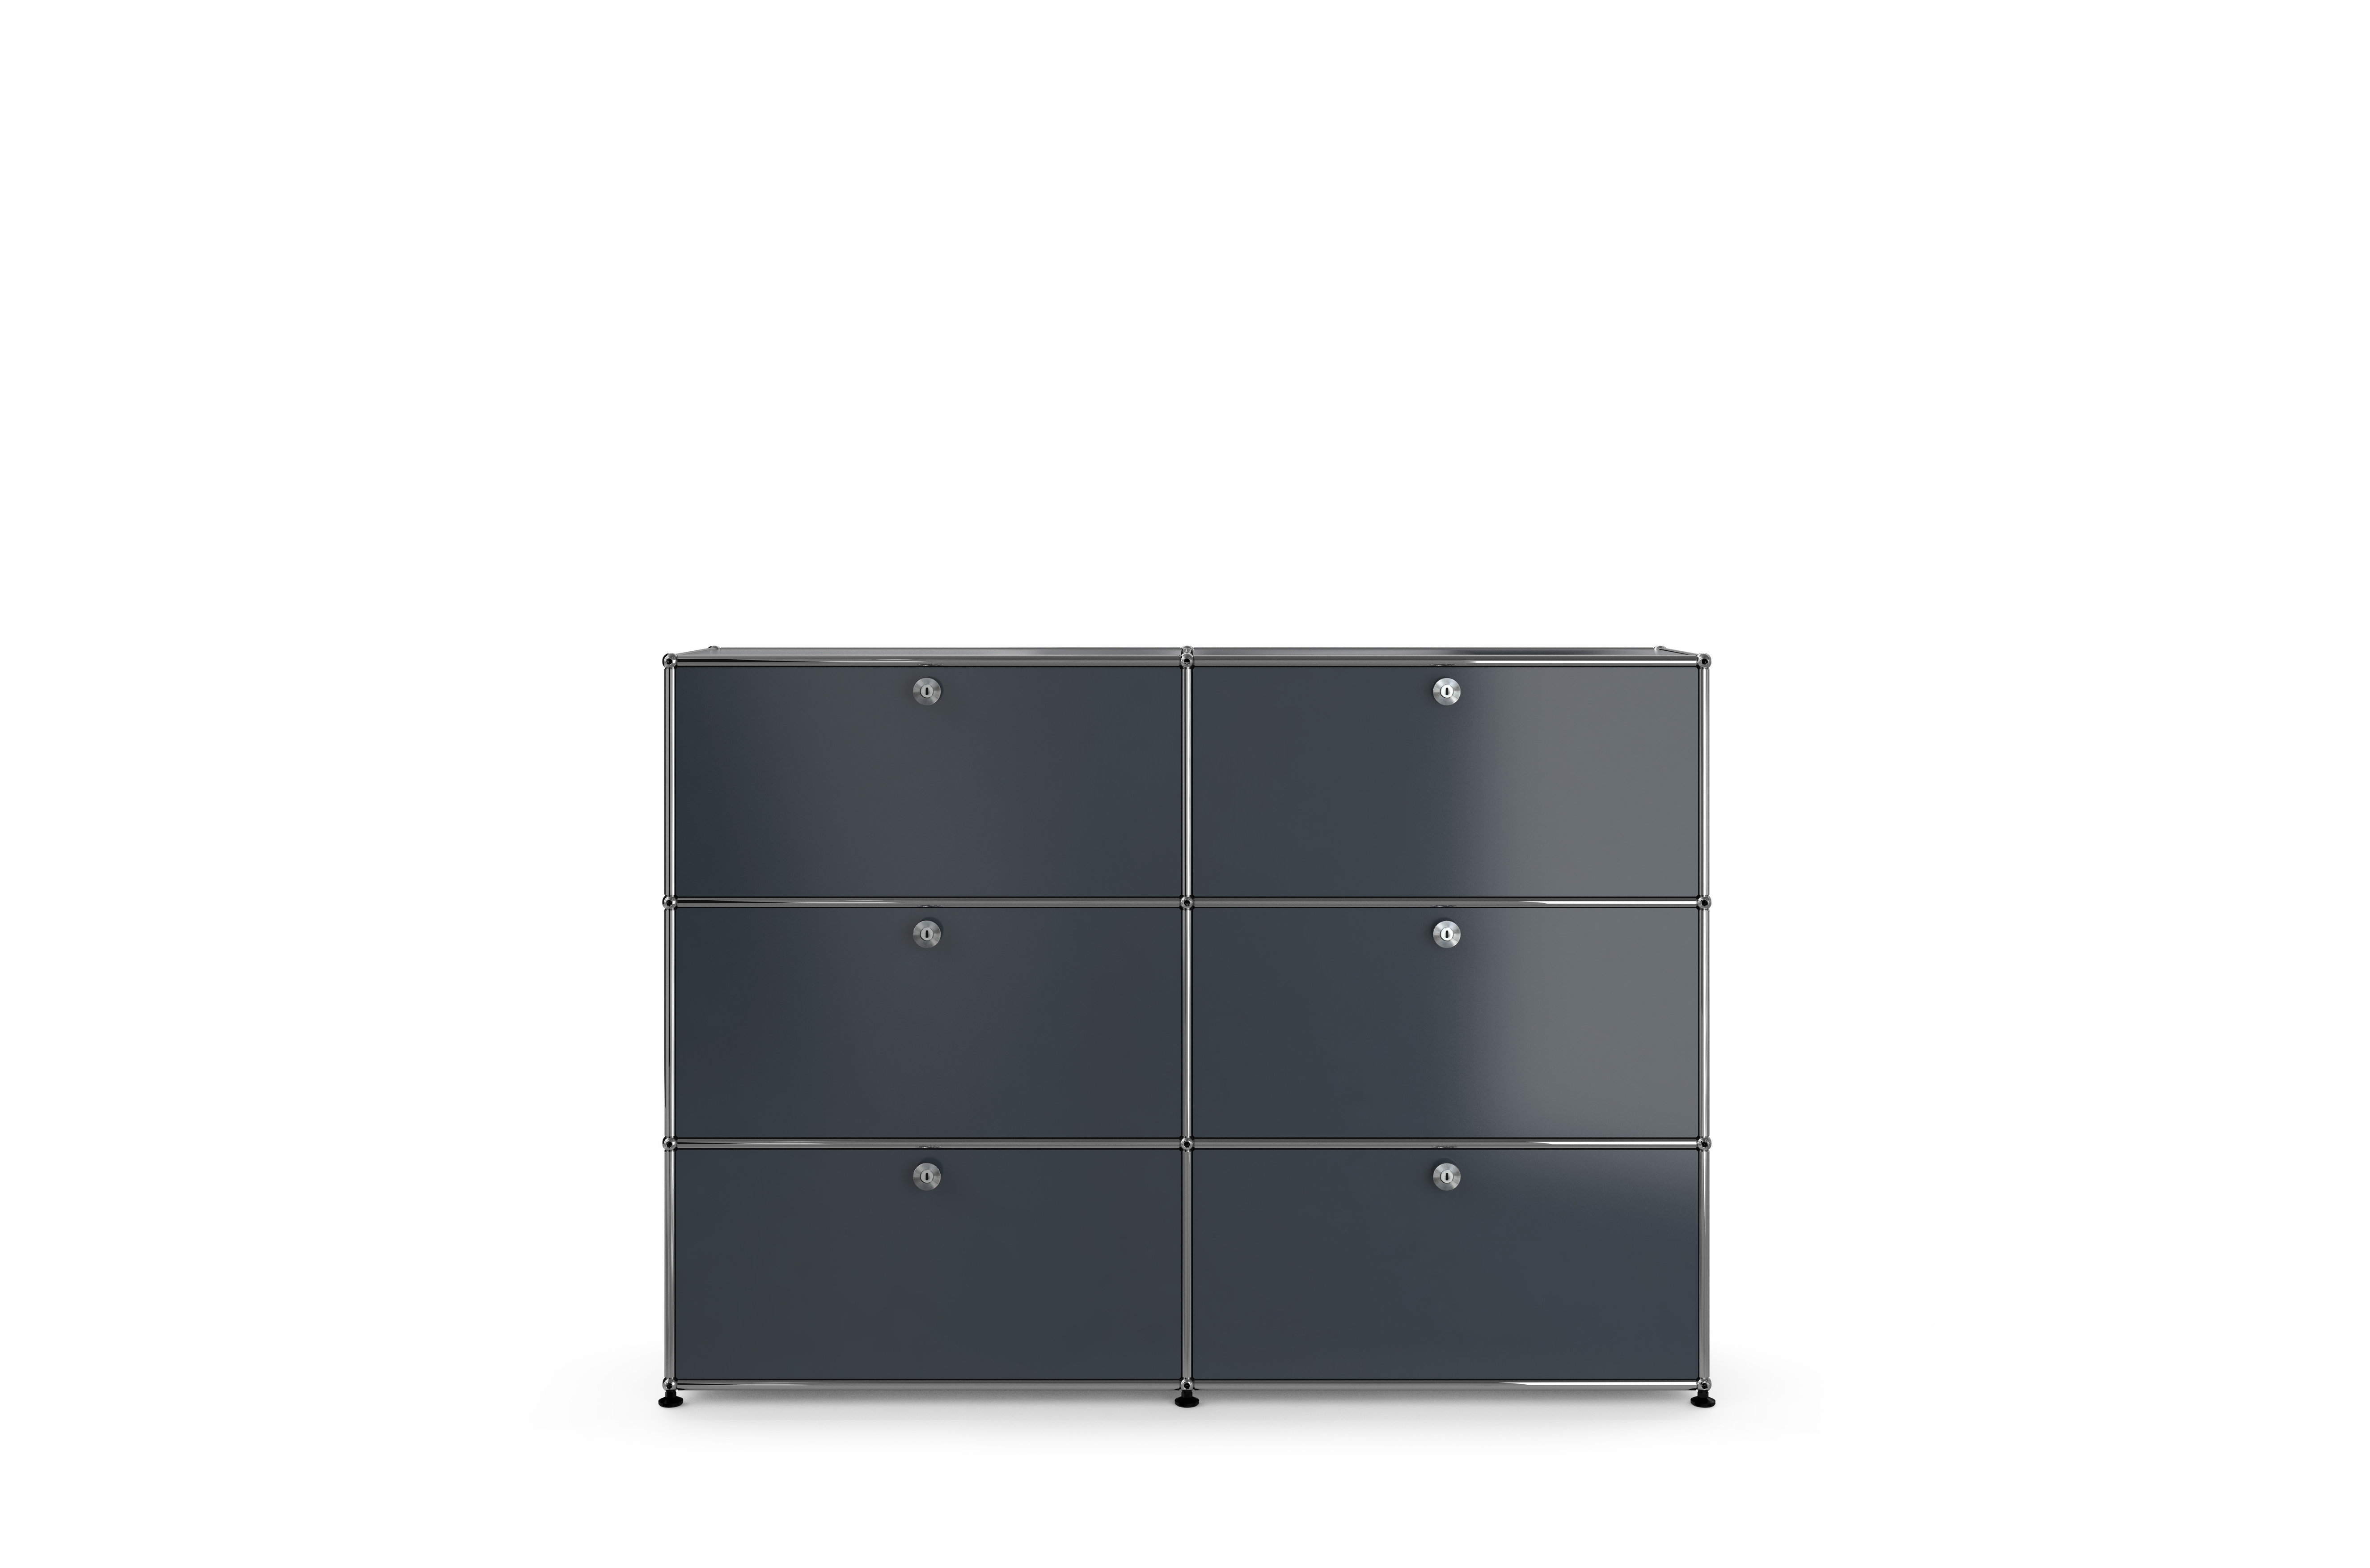 designerm bel und wohnaccessoires online kaufen hublery. Black Bedroom Furniture Sets. Home Design Ideas